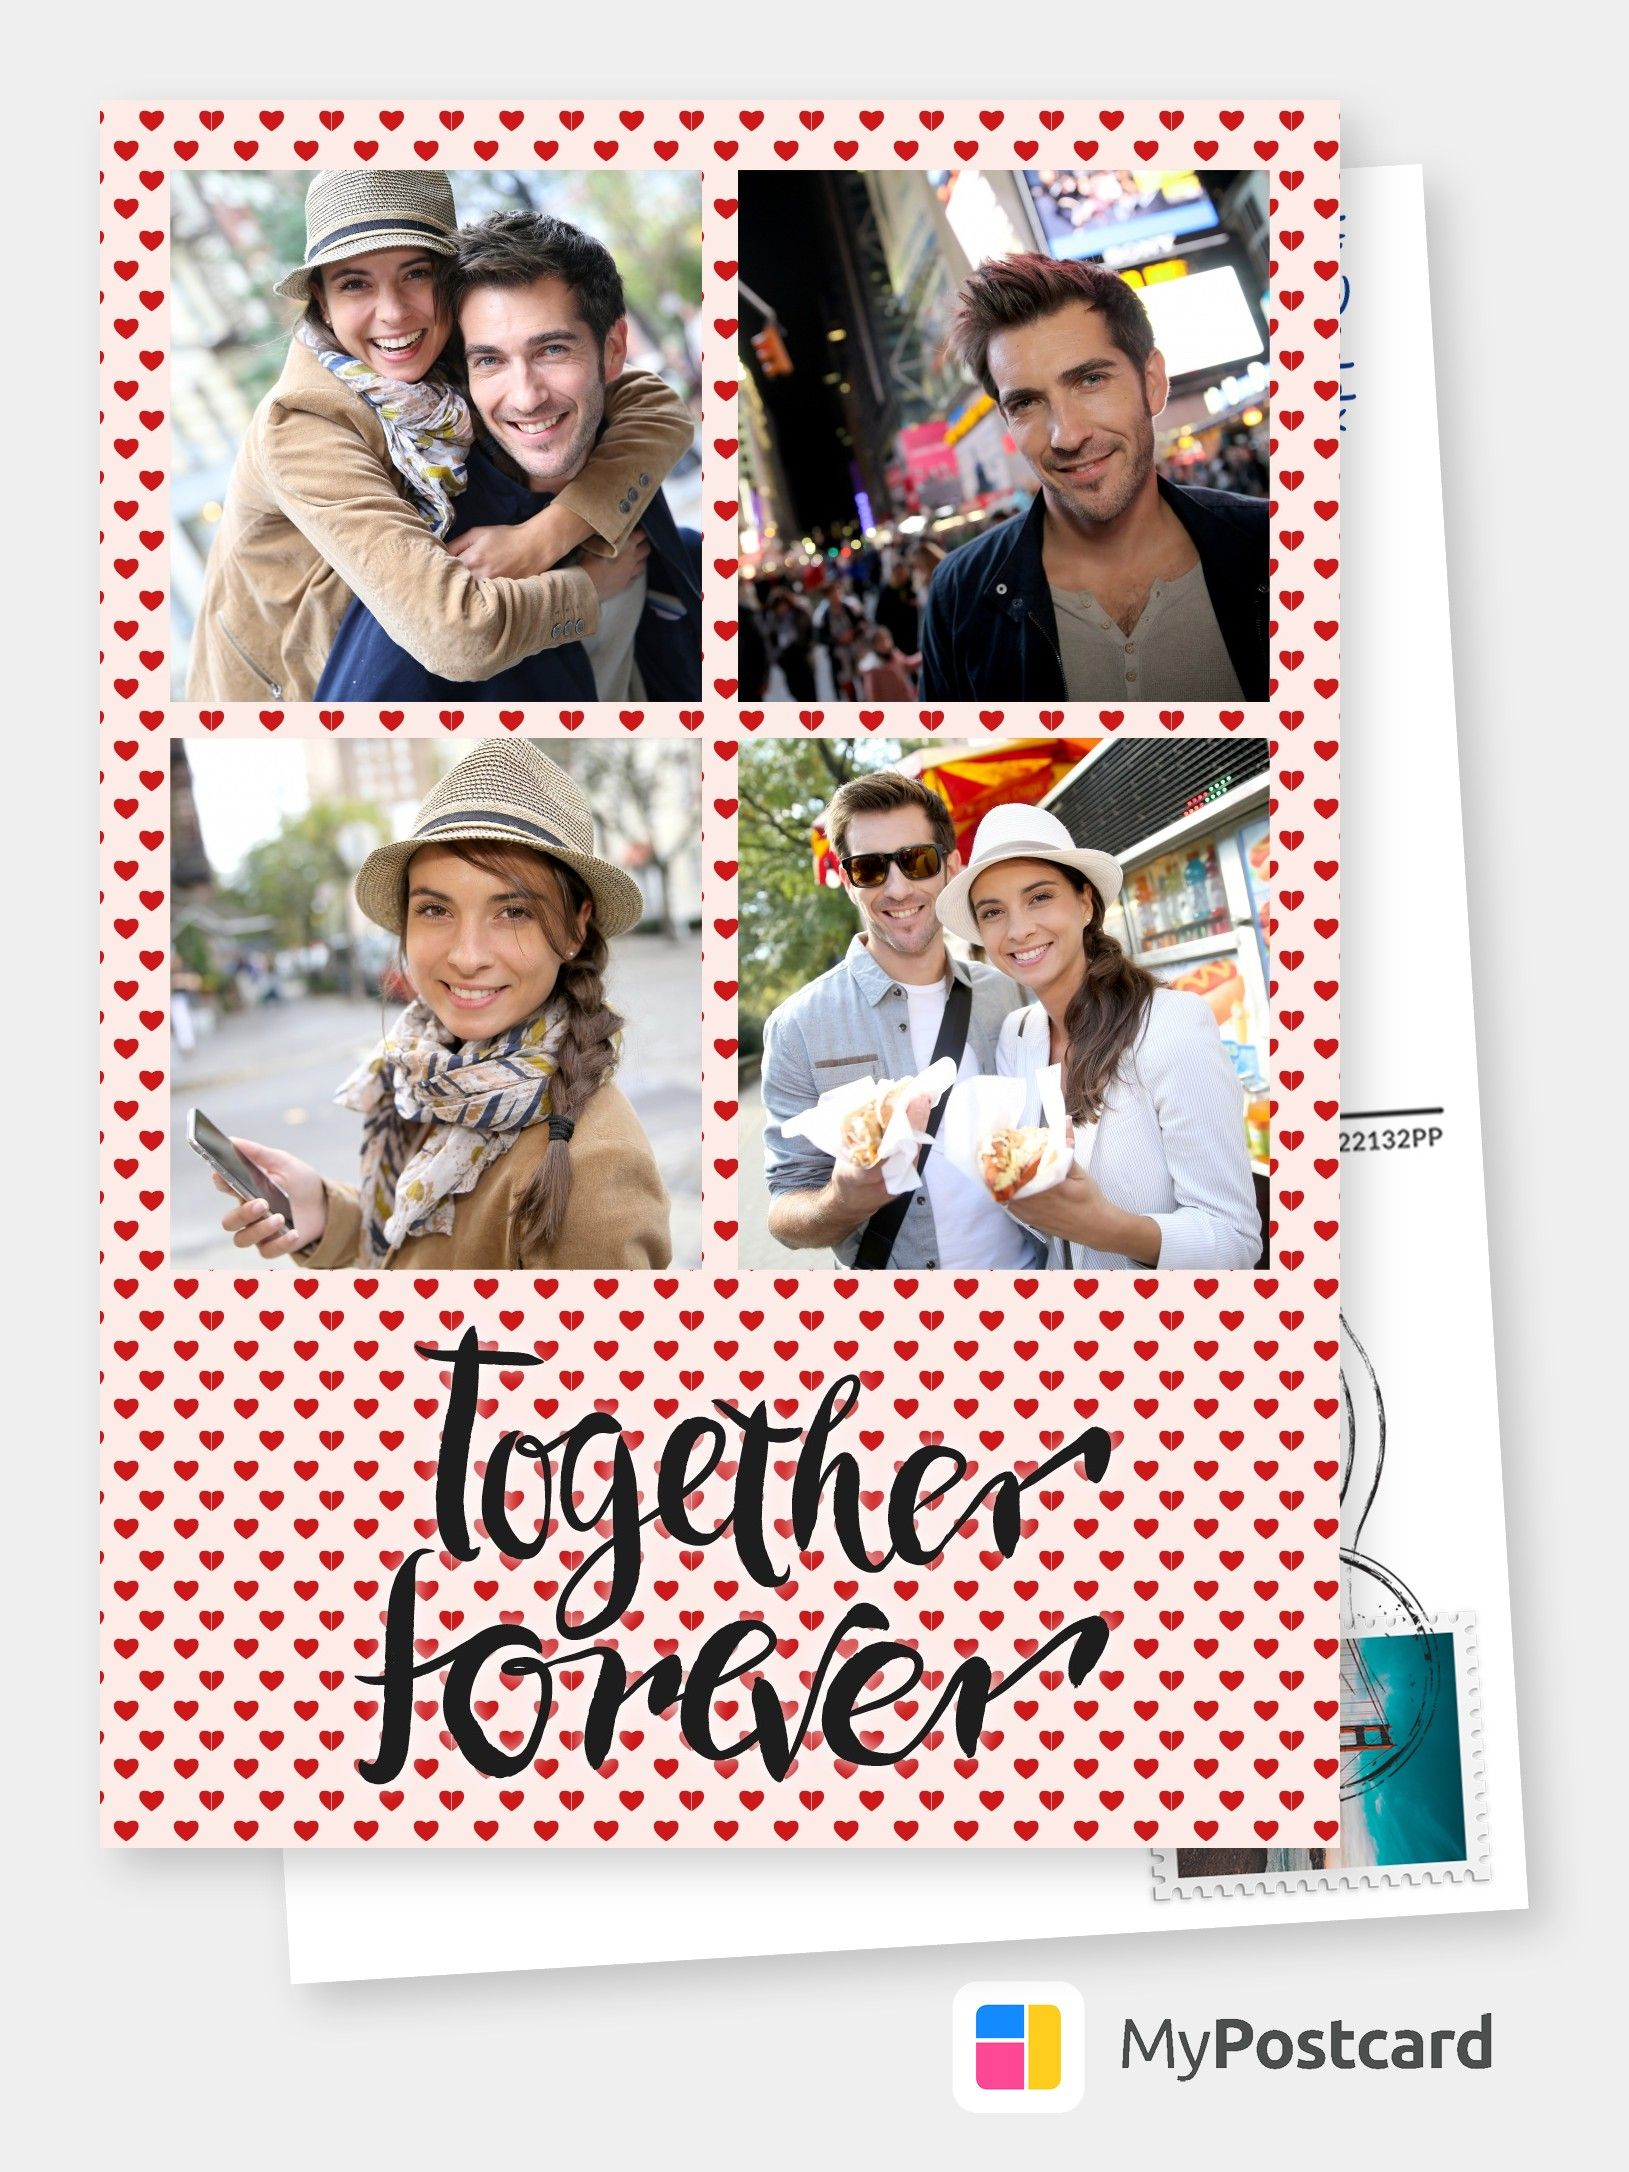 Make Your Own I Love You Photo Cards Online Free Printable Templates Printed Mailed For You Photo Cards Postcards Photo Greeting Cards Online Printed Cards For